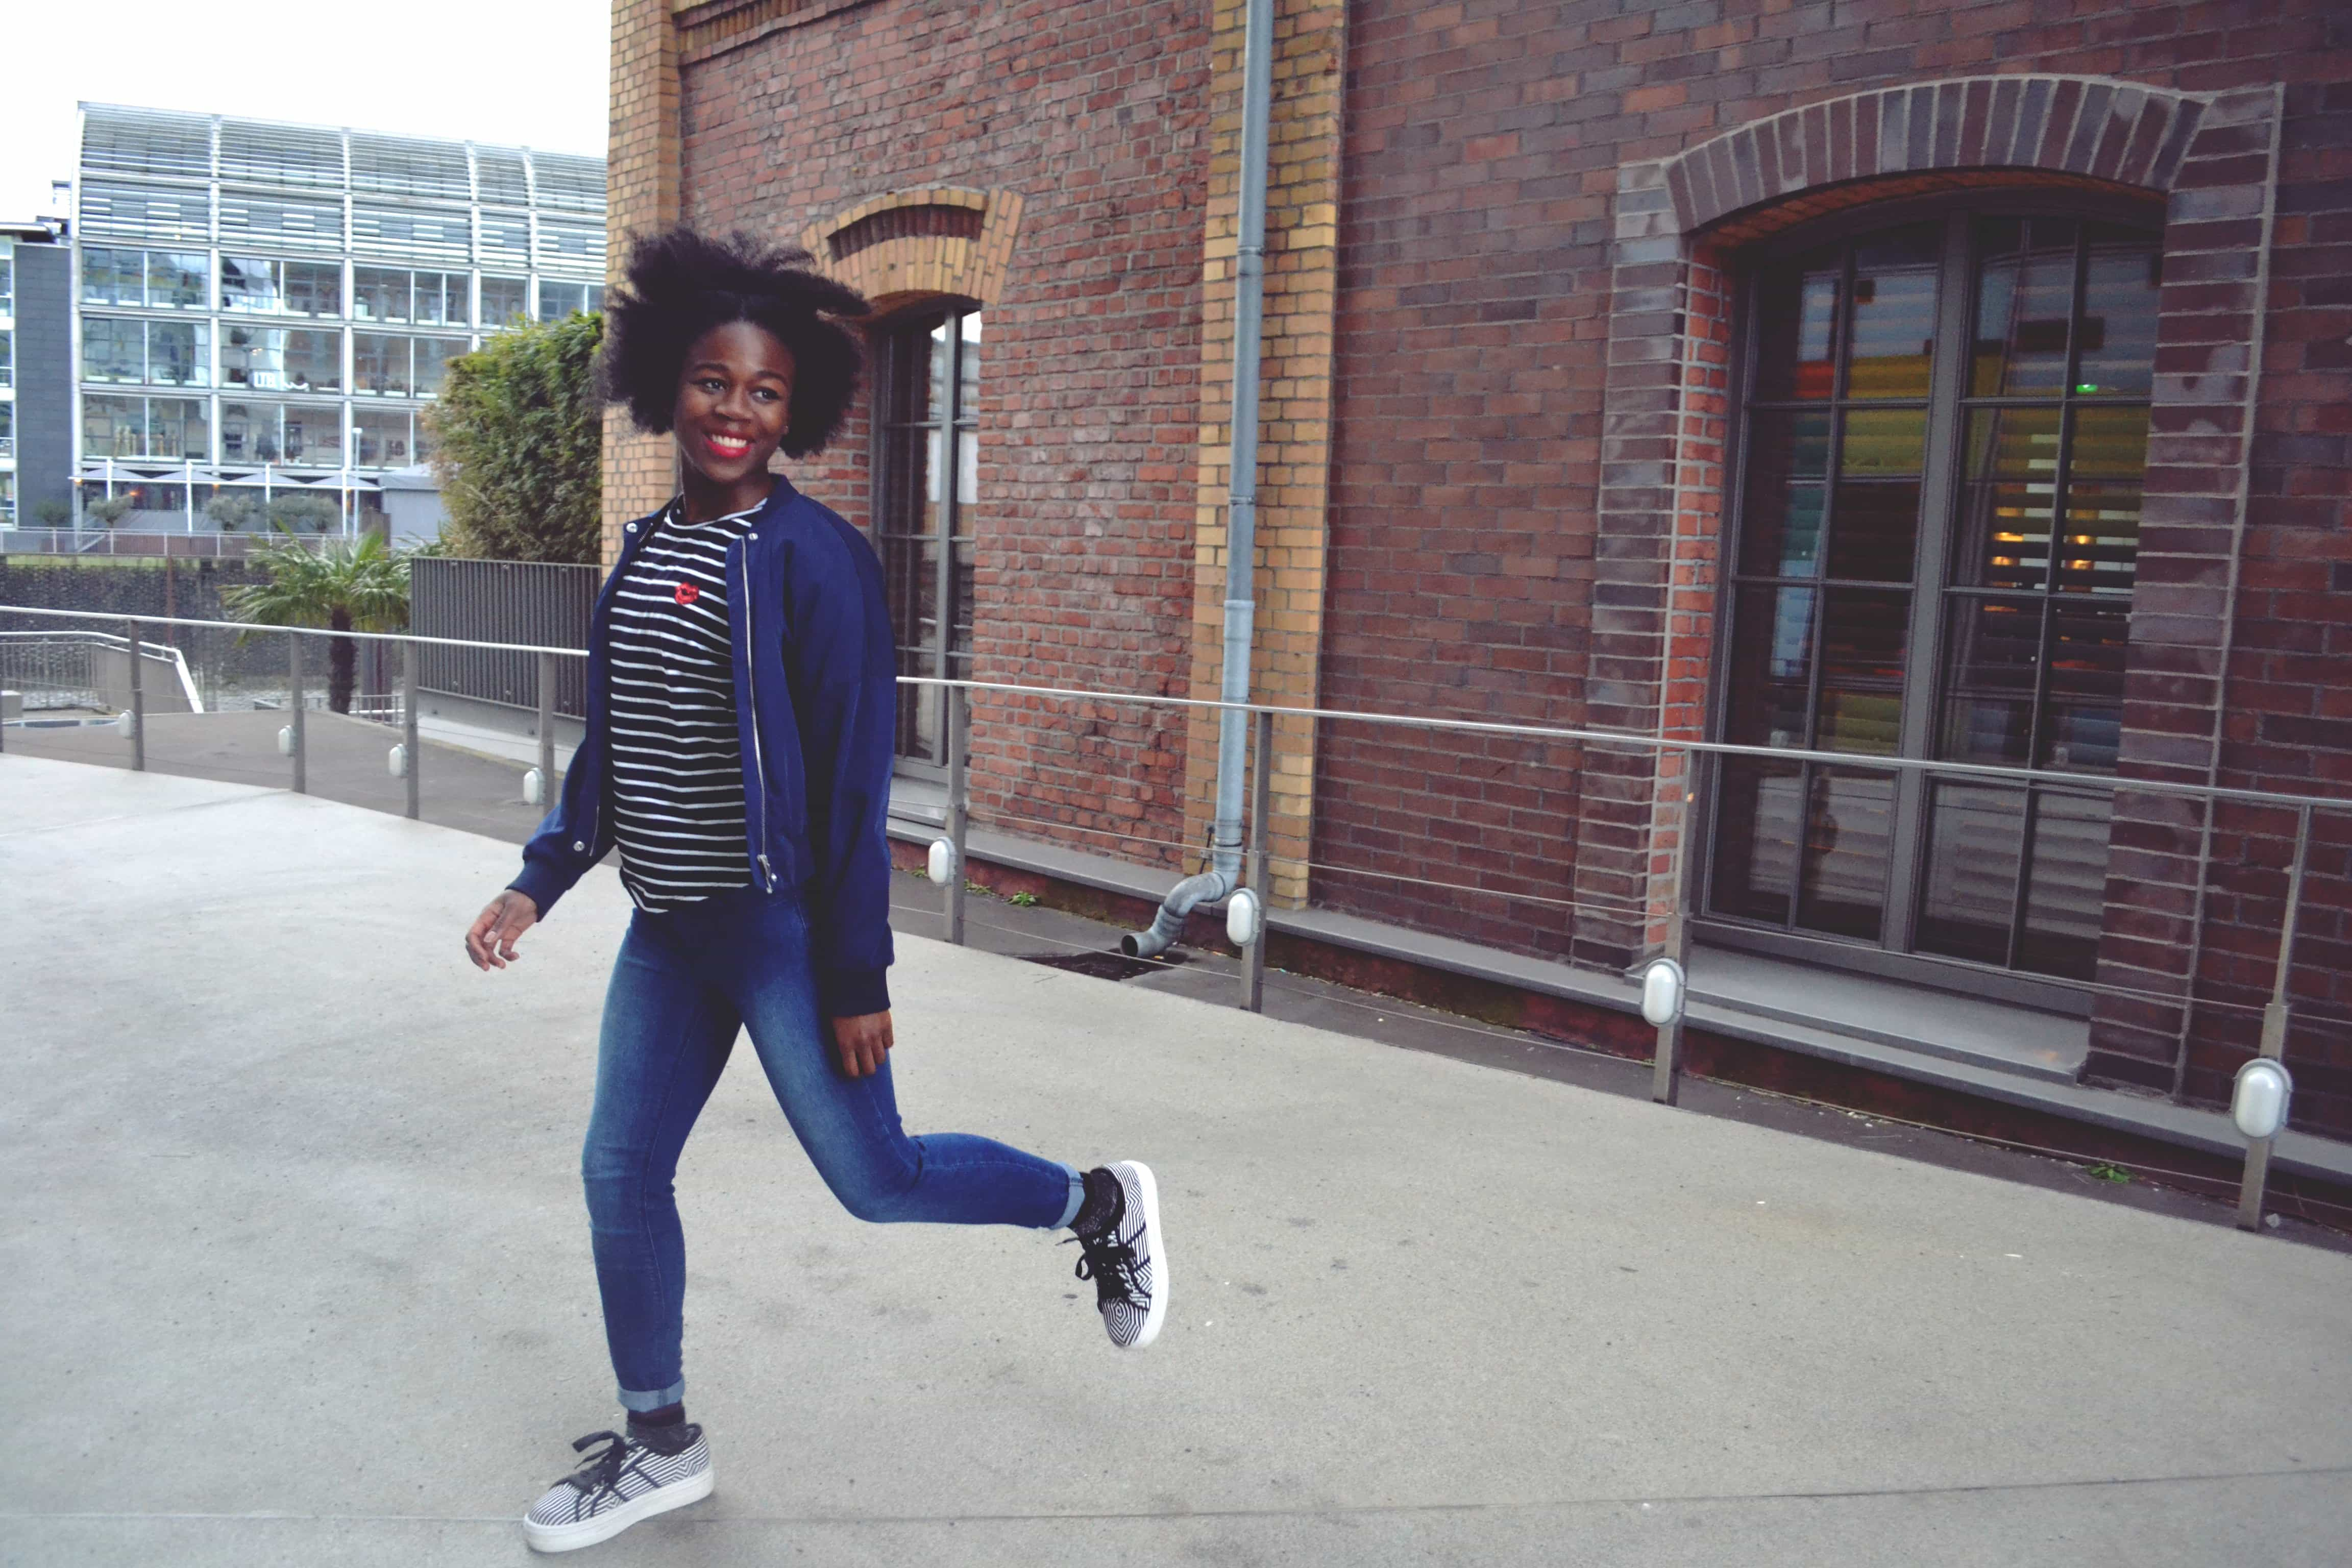 A woman with an afro wearing a navy blue bomber jacket, a black and white stripy t-shirt, blue skinny jeans and black and white stripy platform shoes jumps across the picture with a smile on her face